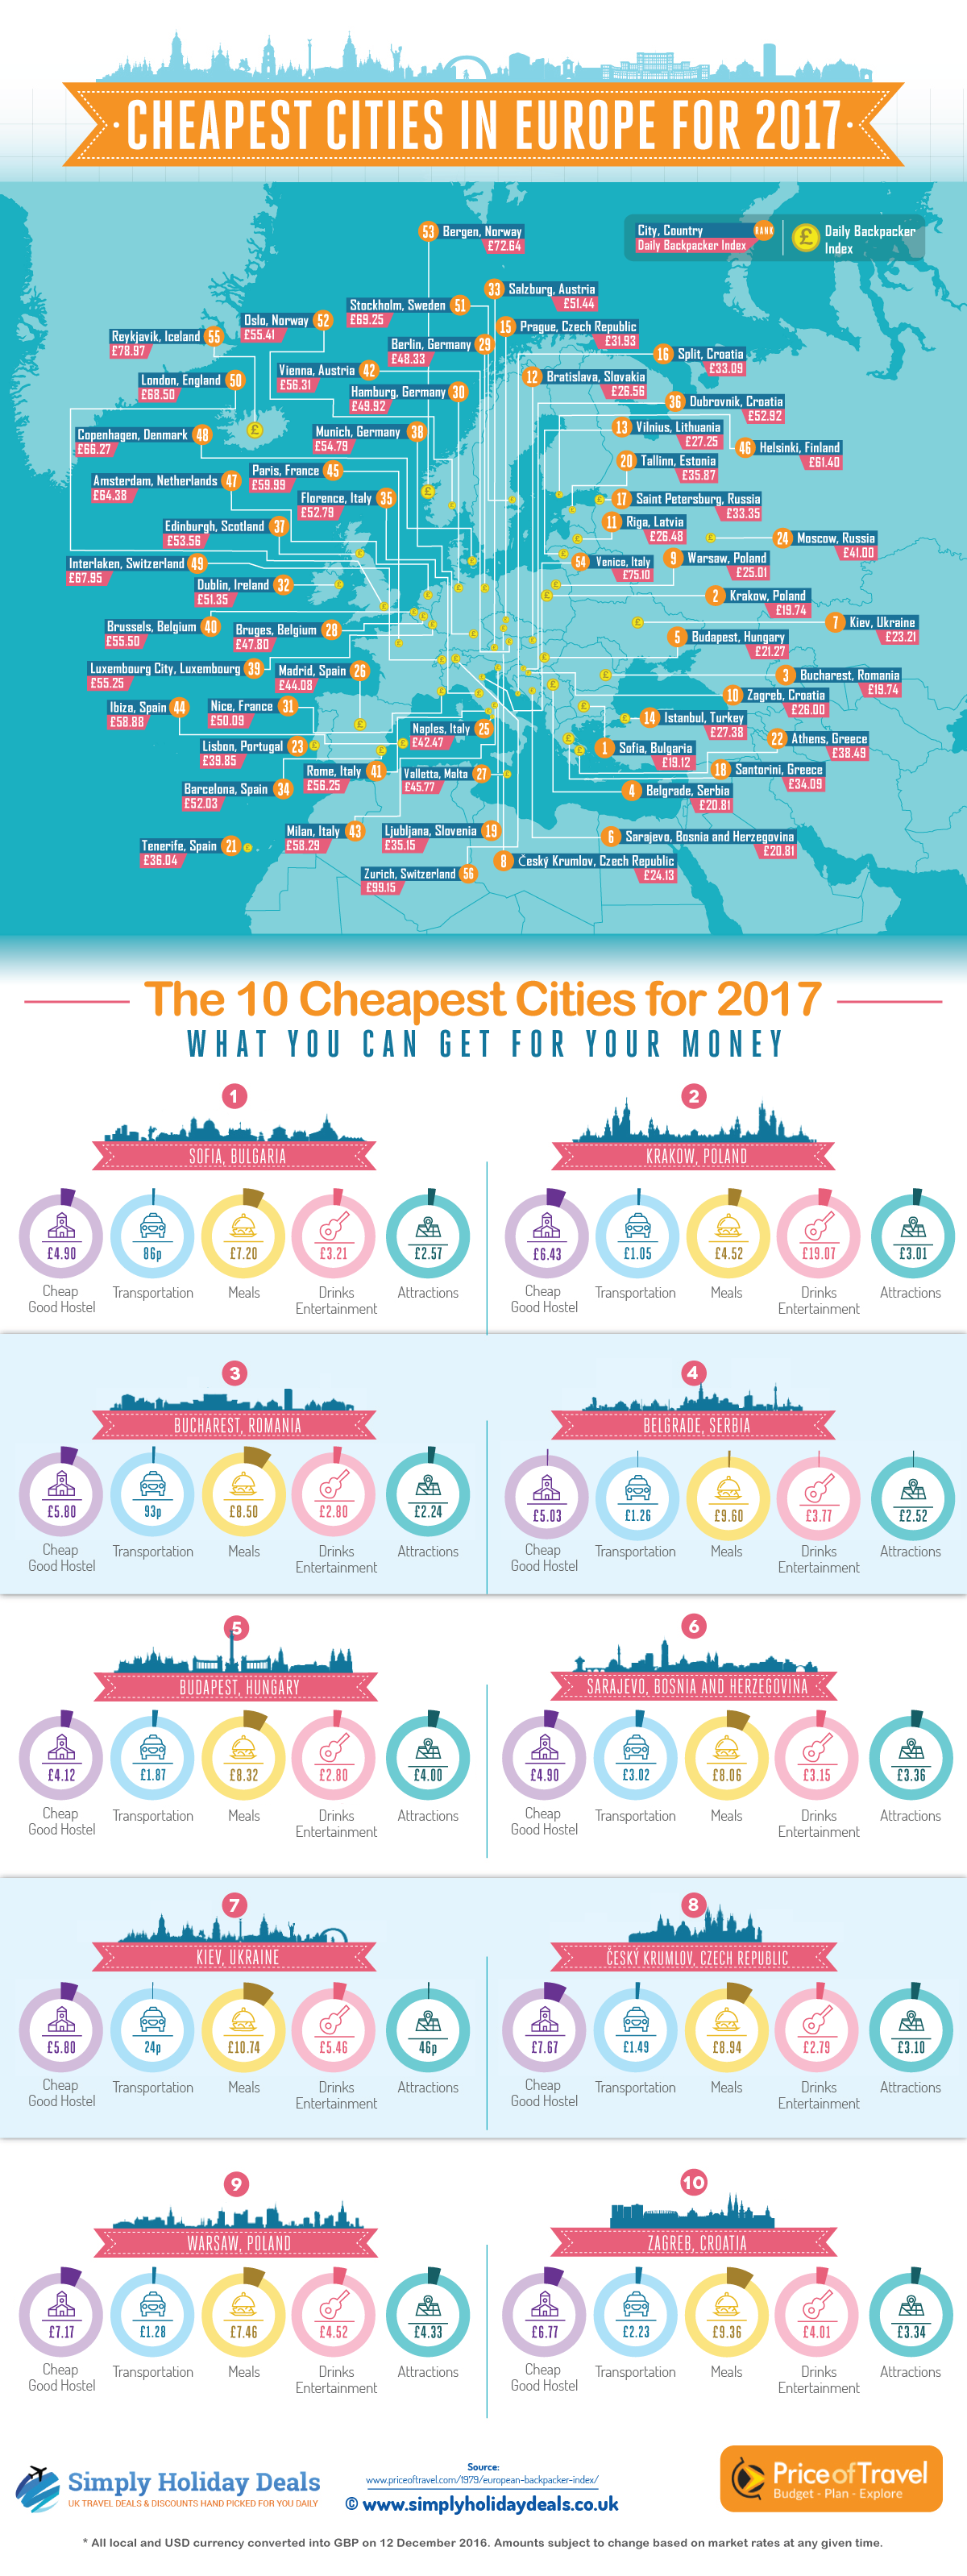 cheapest-cities-europe-2017